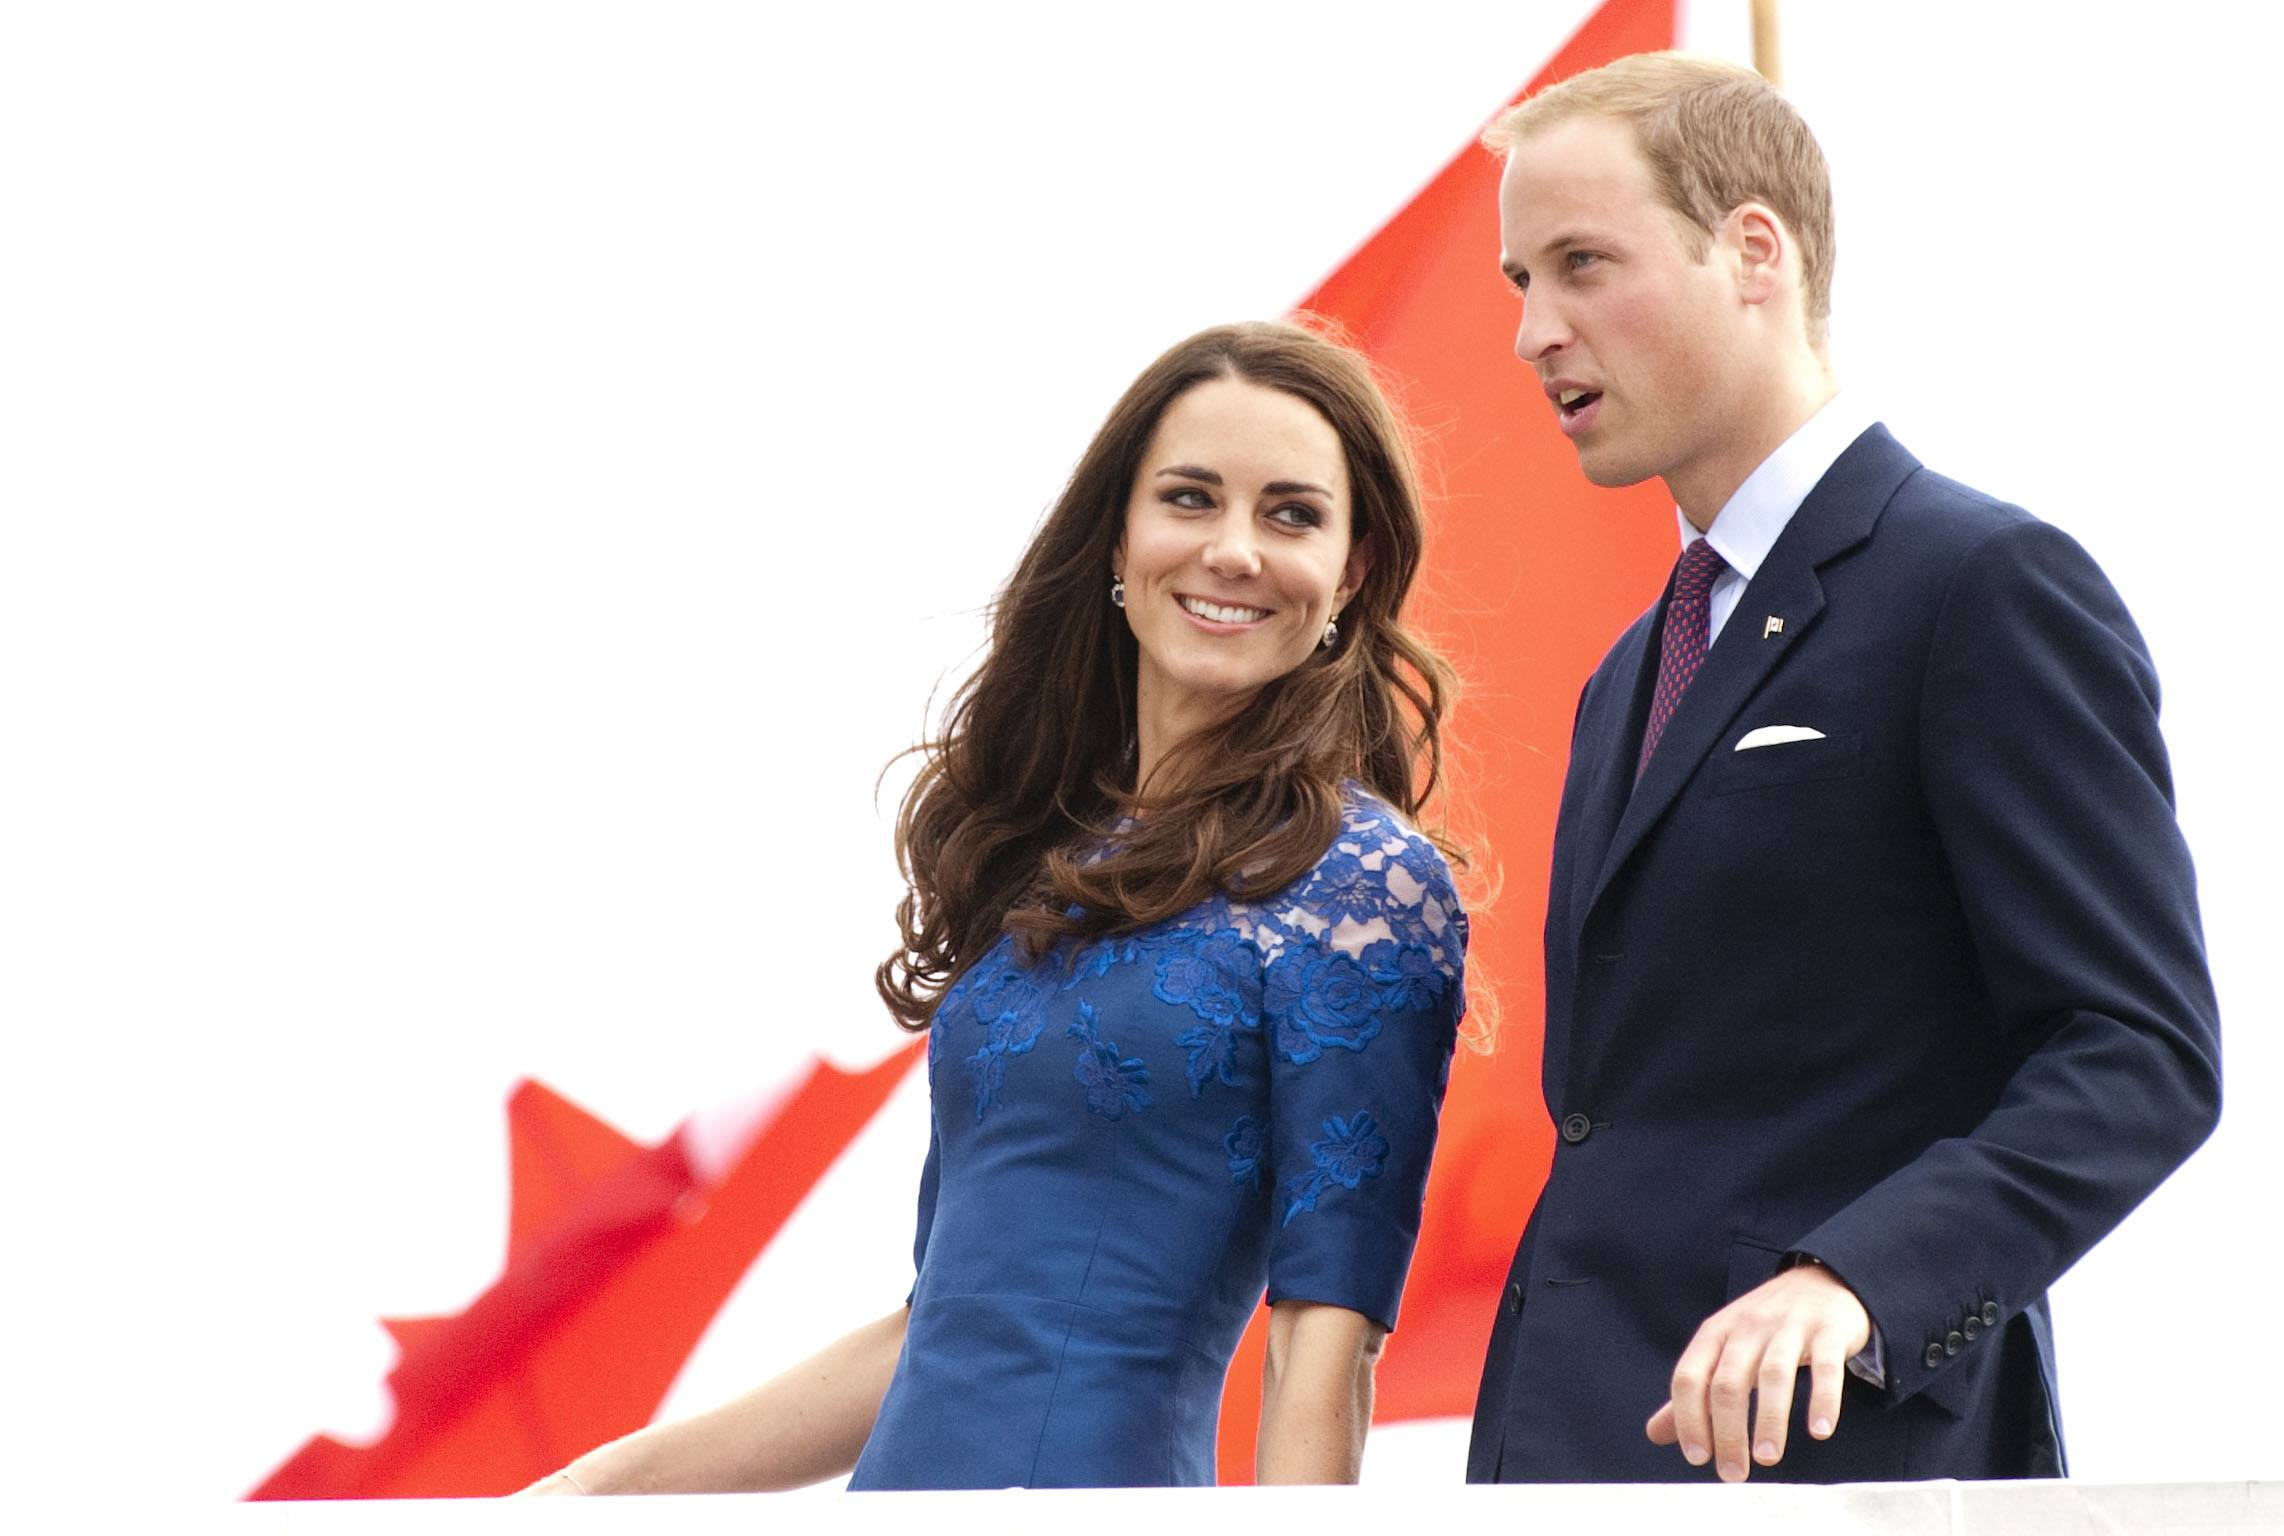 Prince William, Duke of Cambridge and Catherine, Duchess of Cambridge disembark HMCS Montreal in Champlain Harbour on July 3, 2011 in Quebec, Canada.